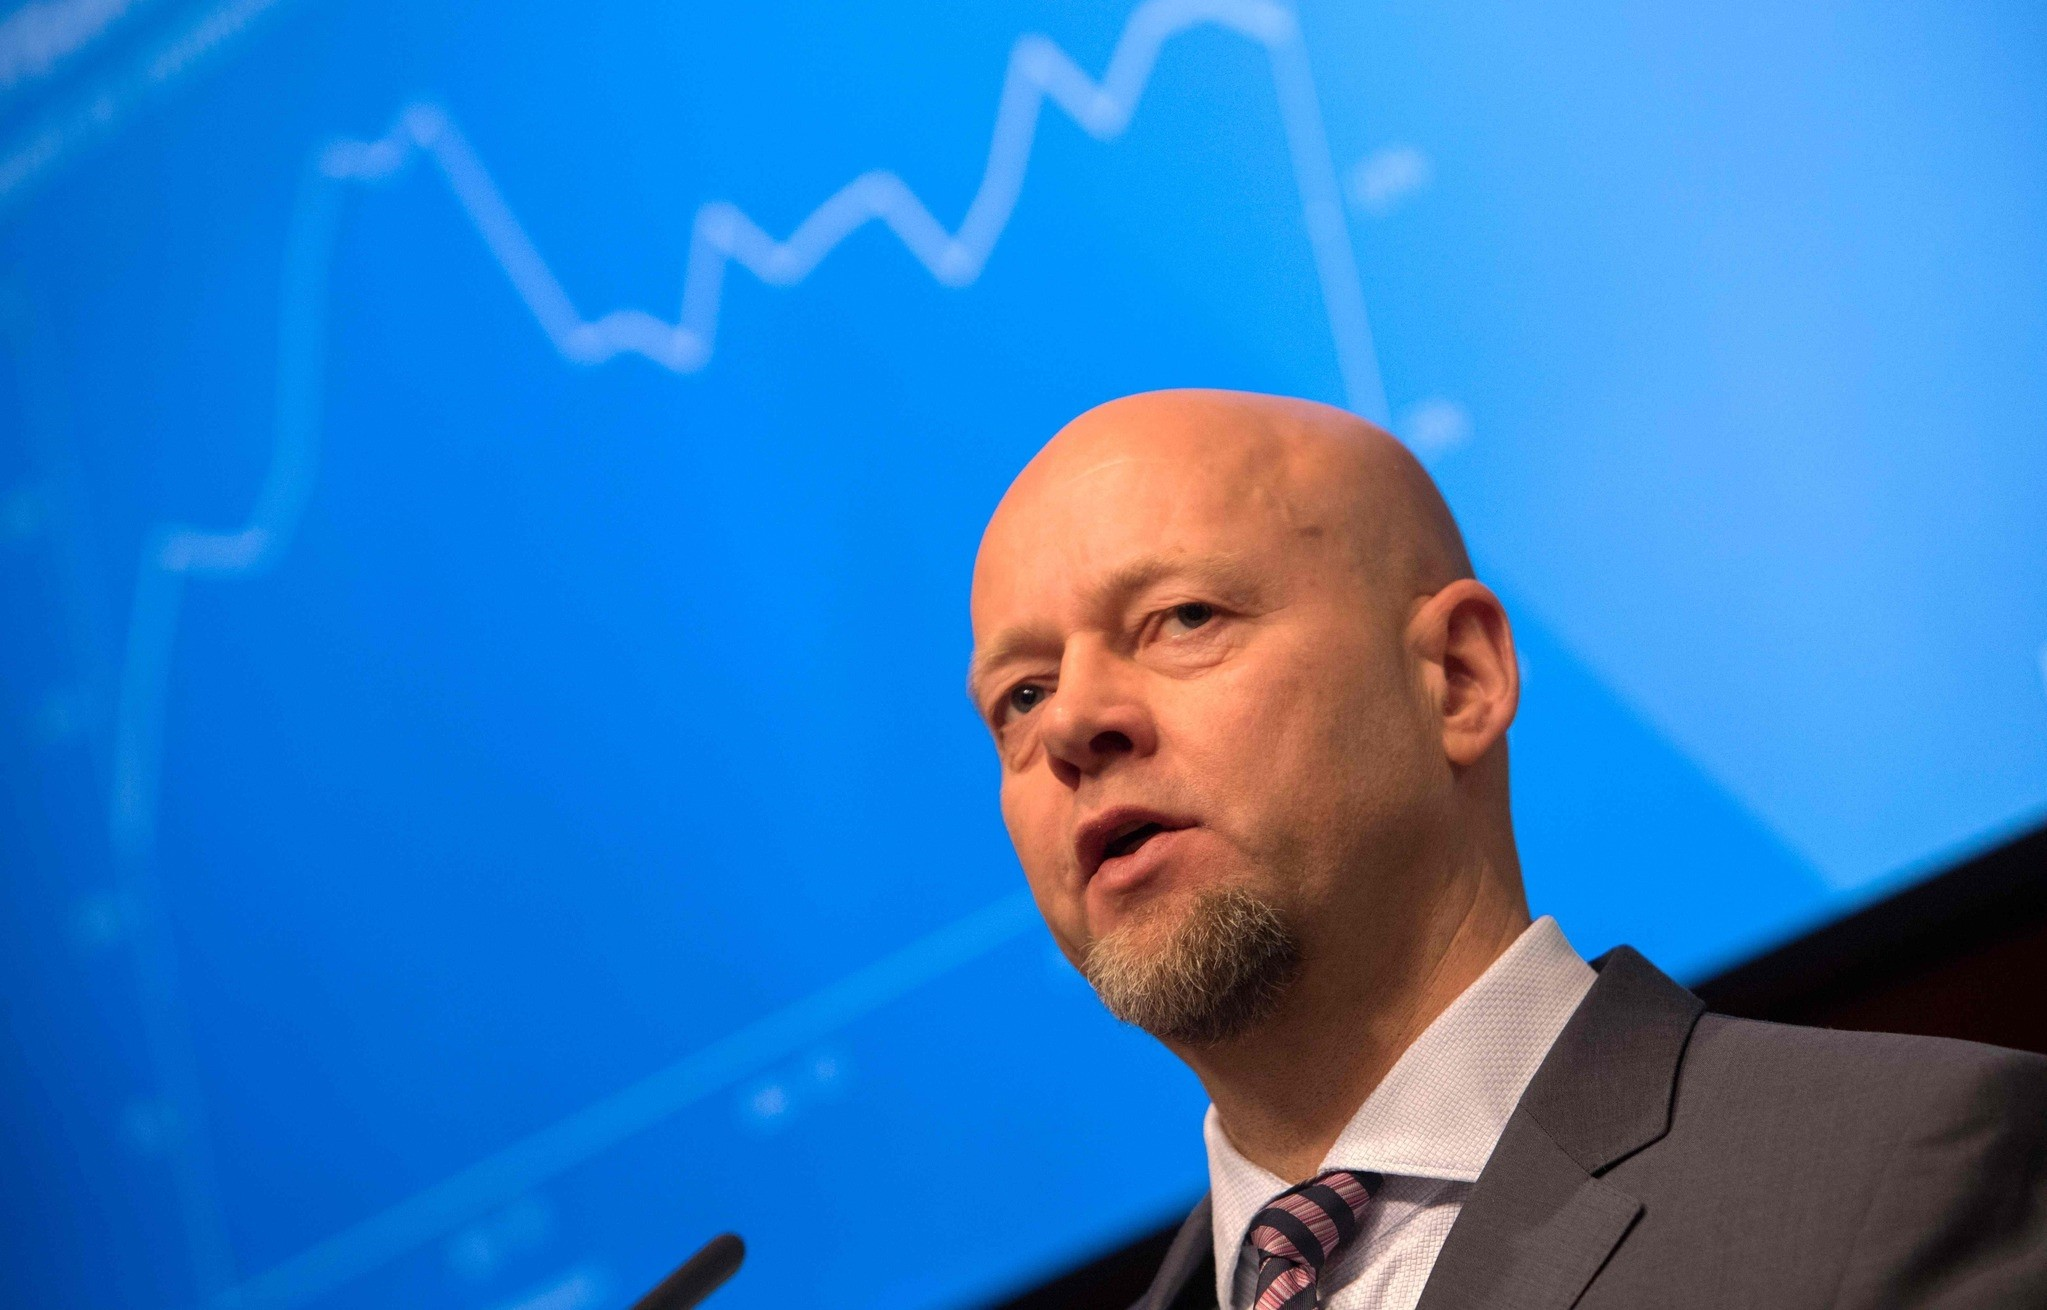 Yngve Slyngstad, CEO of Norges Bank Investment Management (NBIM), which is part of the Central Bank of Norway (Norges Bank), presents details from the annual report of the Norwegian Government Pension Fund in Oslo.